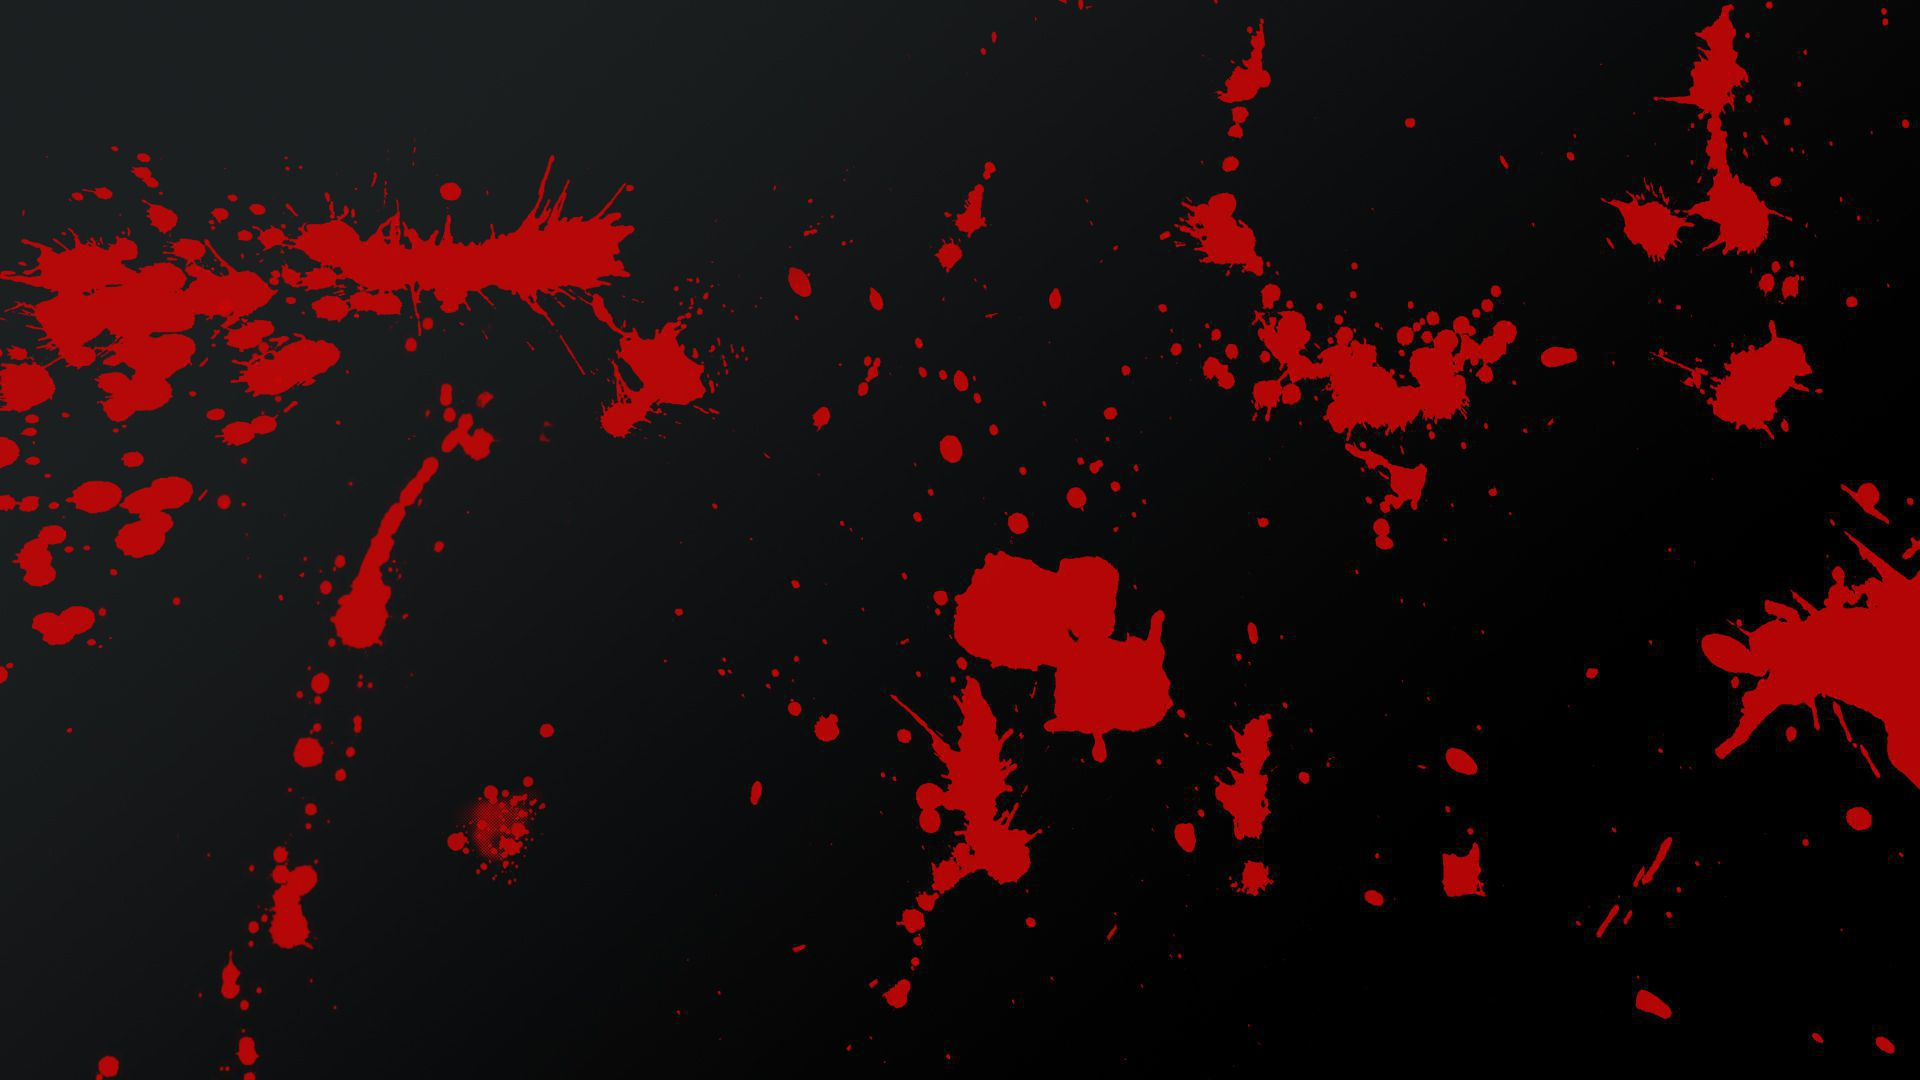 Blood Splatter Computer Wallpaper